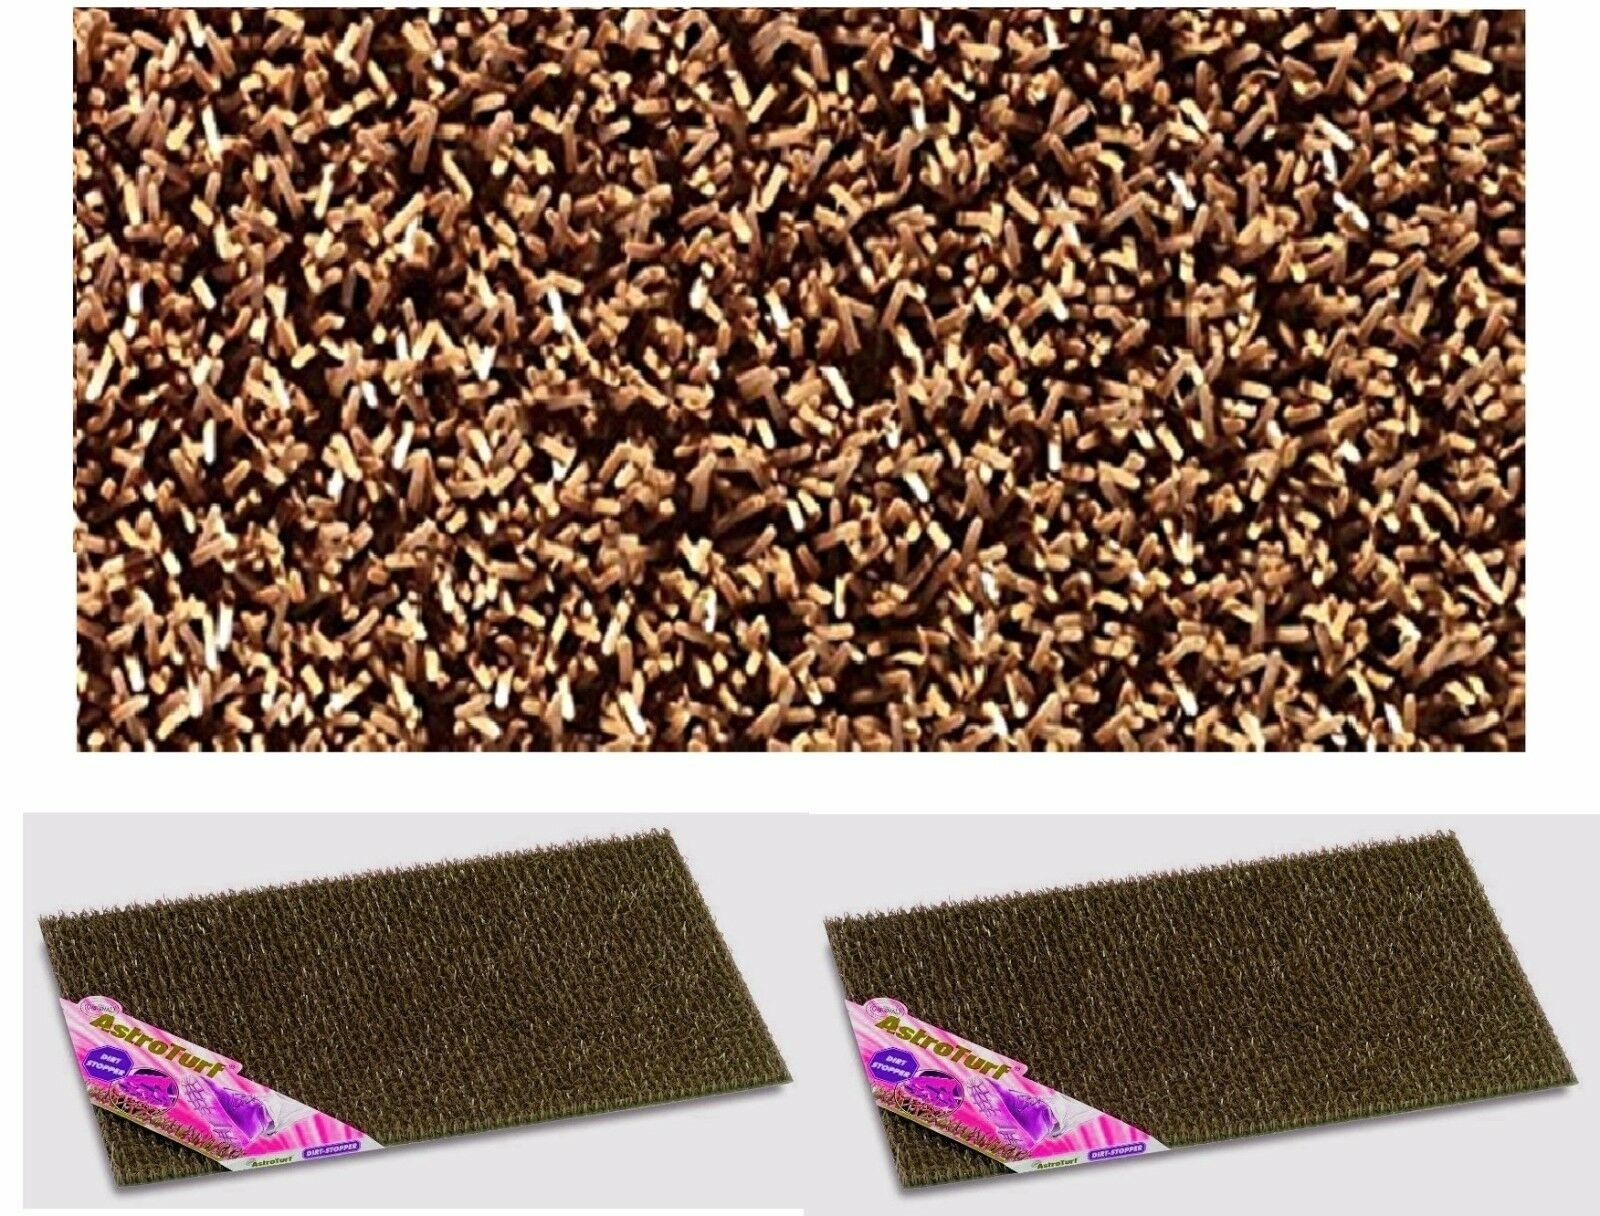 2 x Astro Turf External Plastic Scraper Door Mat Anti Slip Home Entrance Coca Brown New & 2x Astro Turf External Plastic Scraper Door Mat Anti Slip Home ...